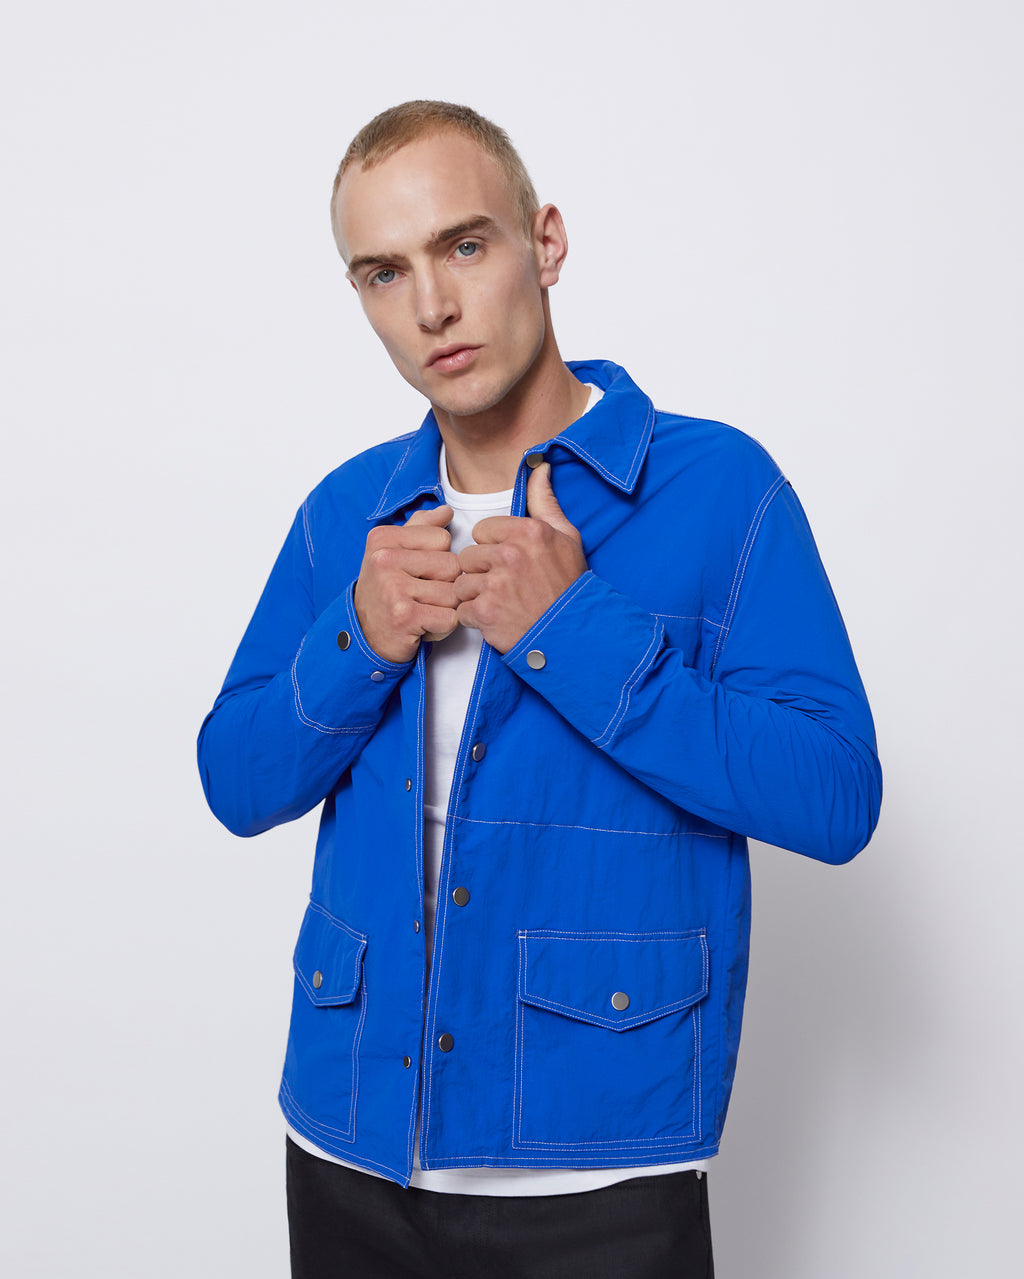 The Garrick Jacket in Royal Blue